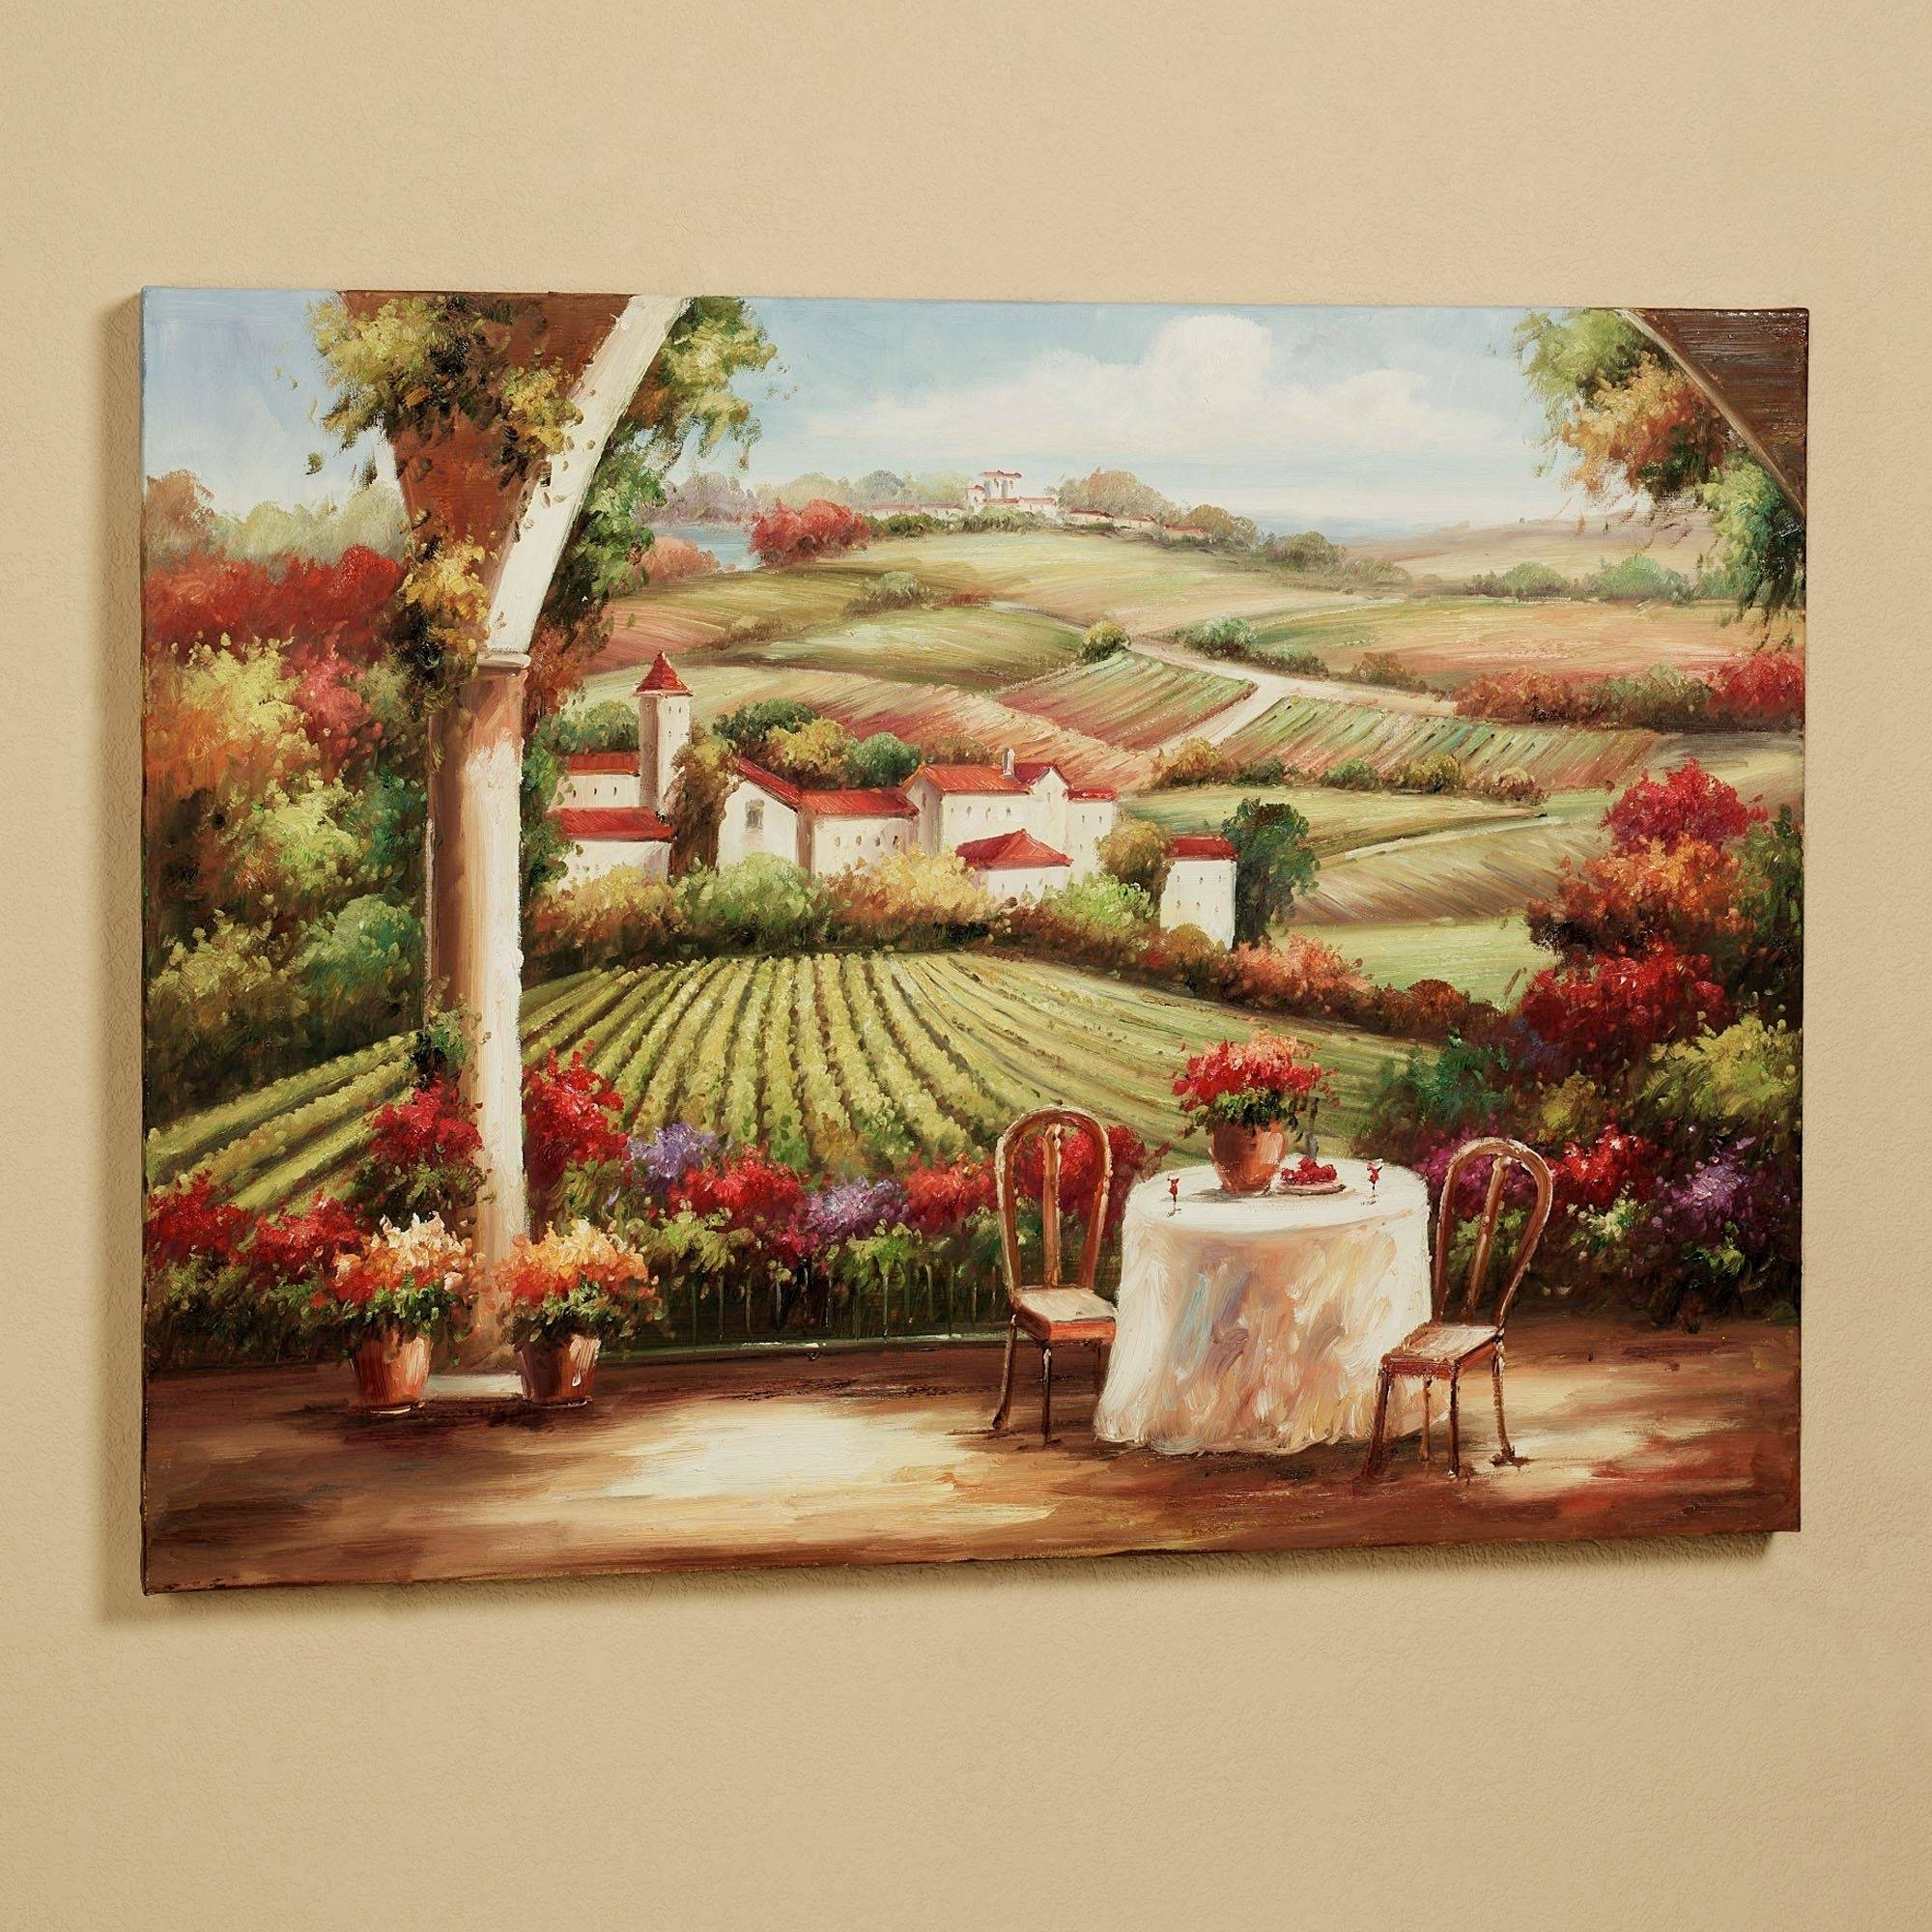 Home Design : 79 Charming Wall Art Ideas For Larges In Newest Vineyard Wall Art (View 4 of 20)